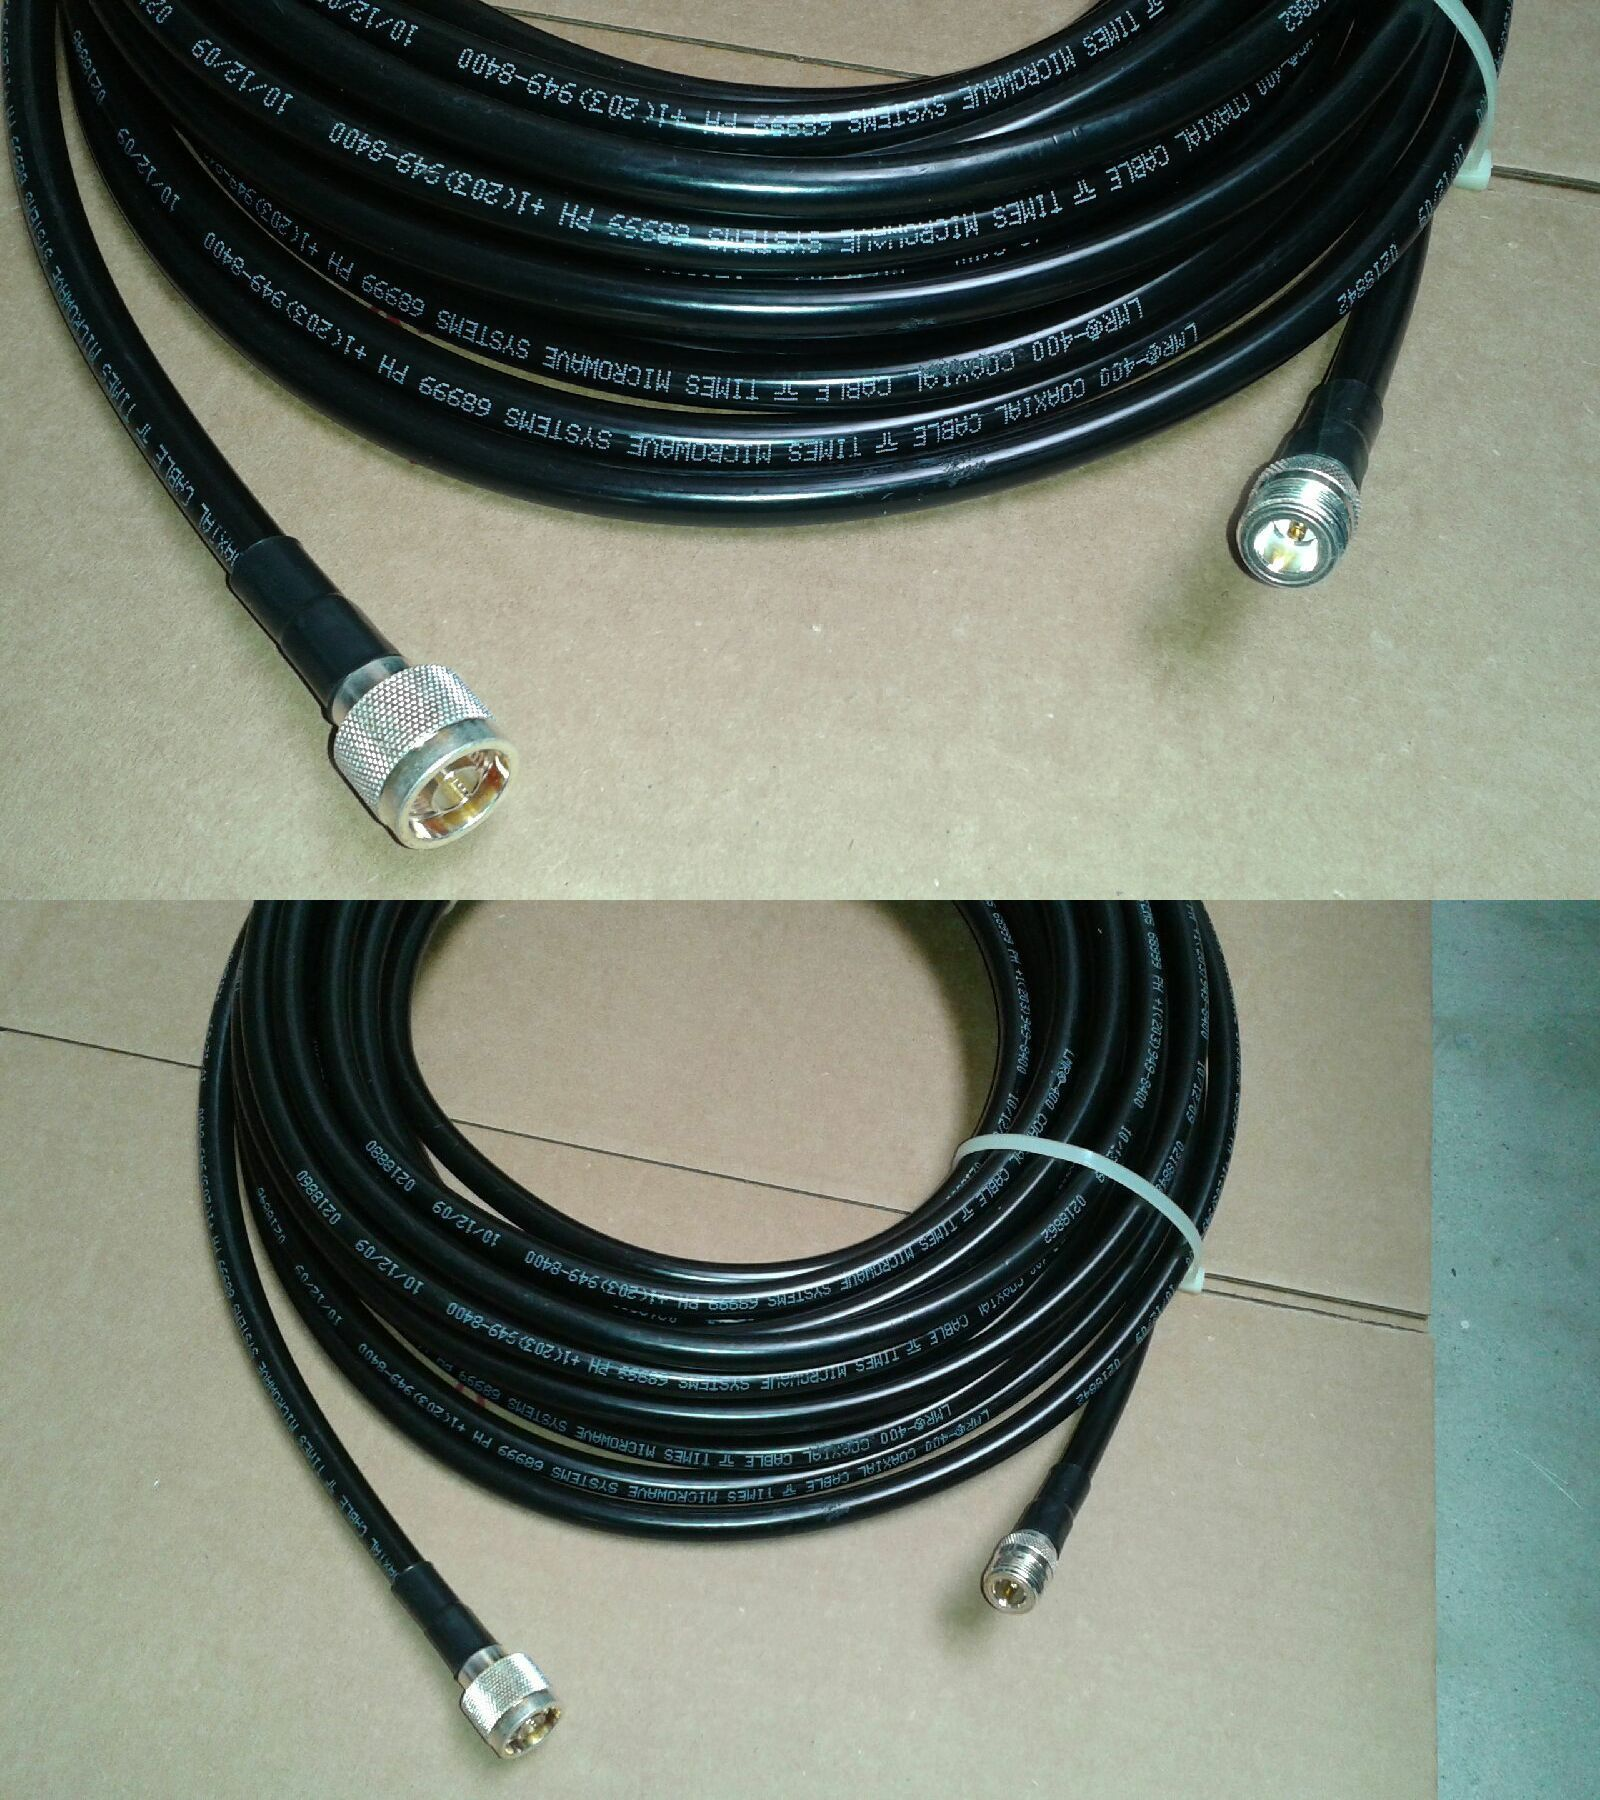 US MADE   LMR-240  PL259  Male UHF  to PL259  Male 50 ohm CNT-240 100 FT